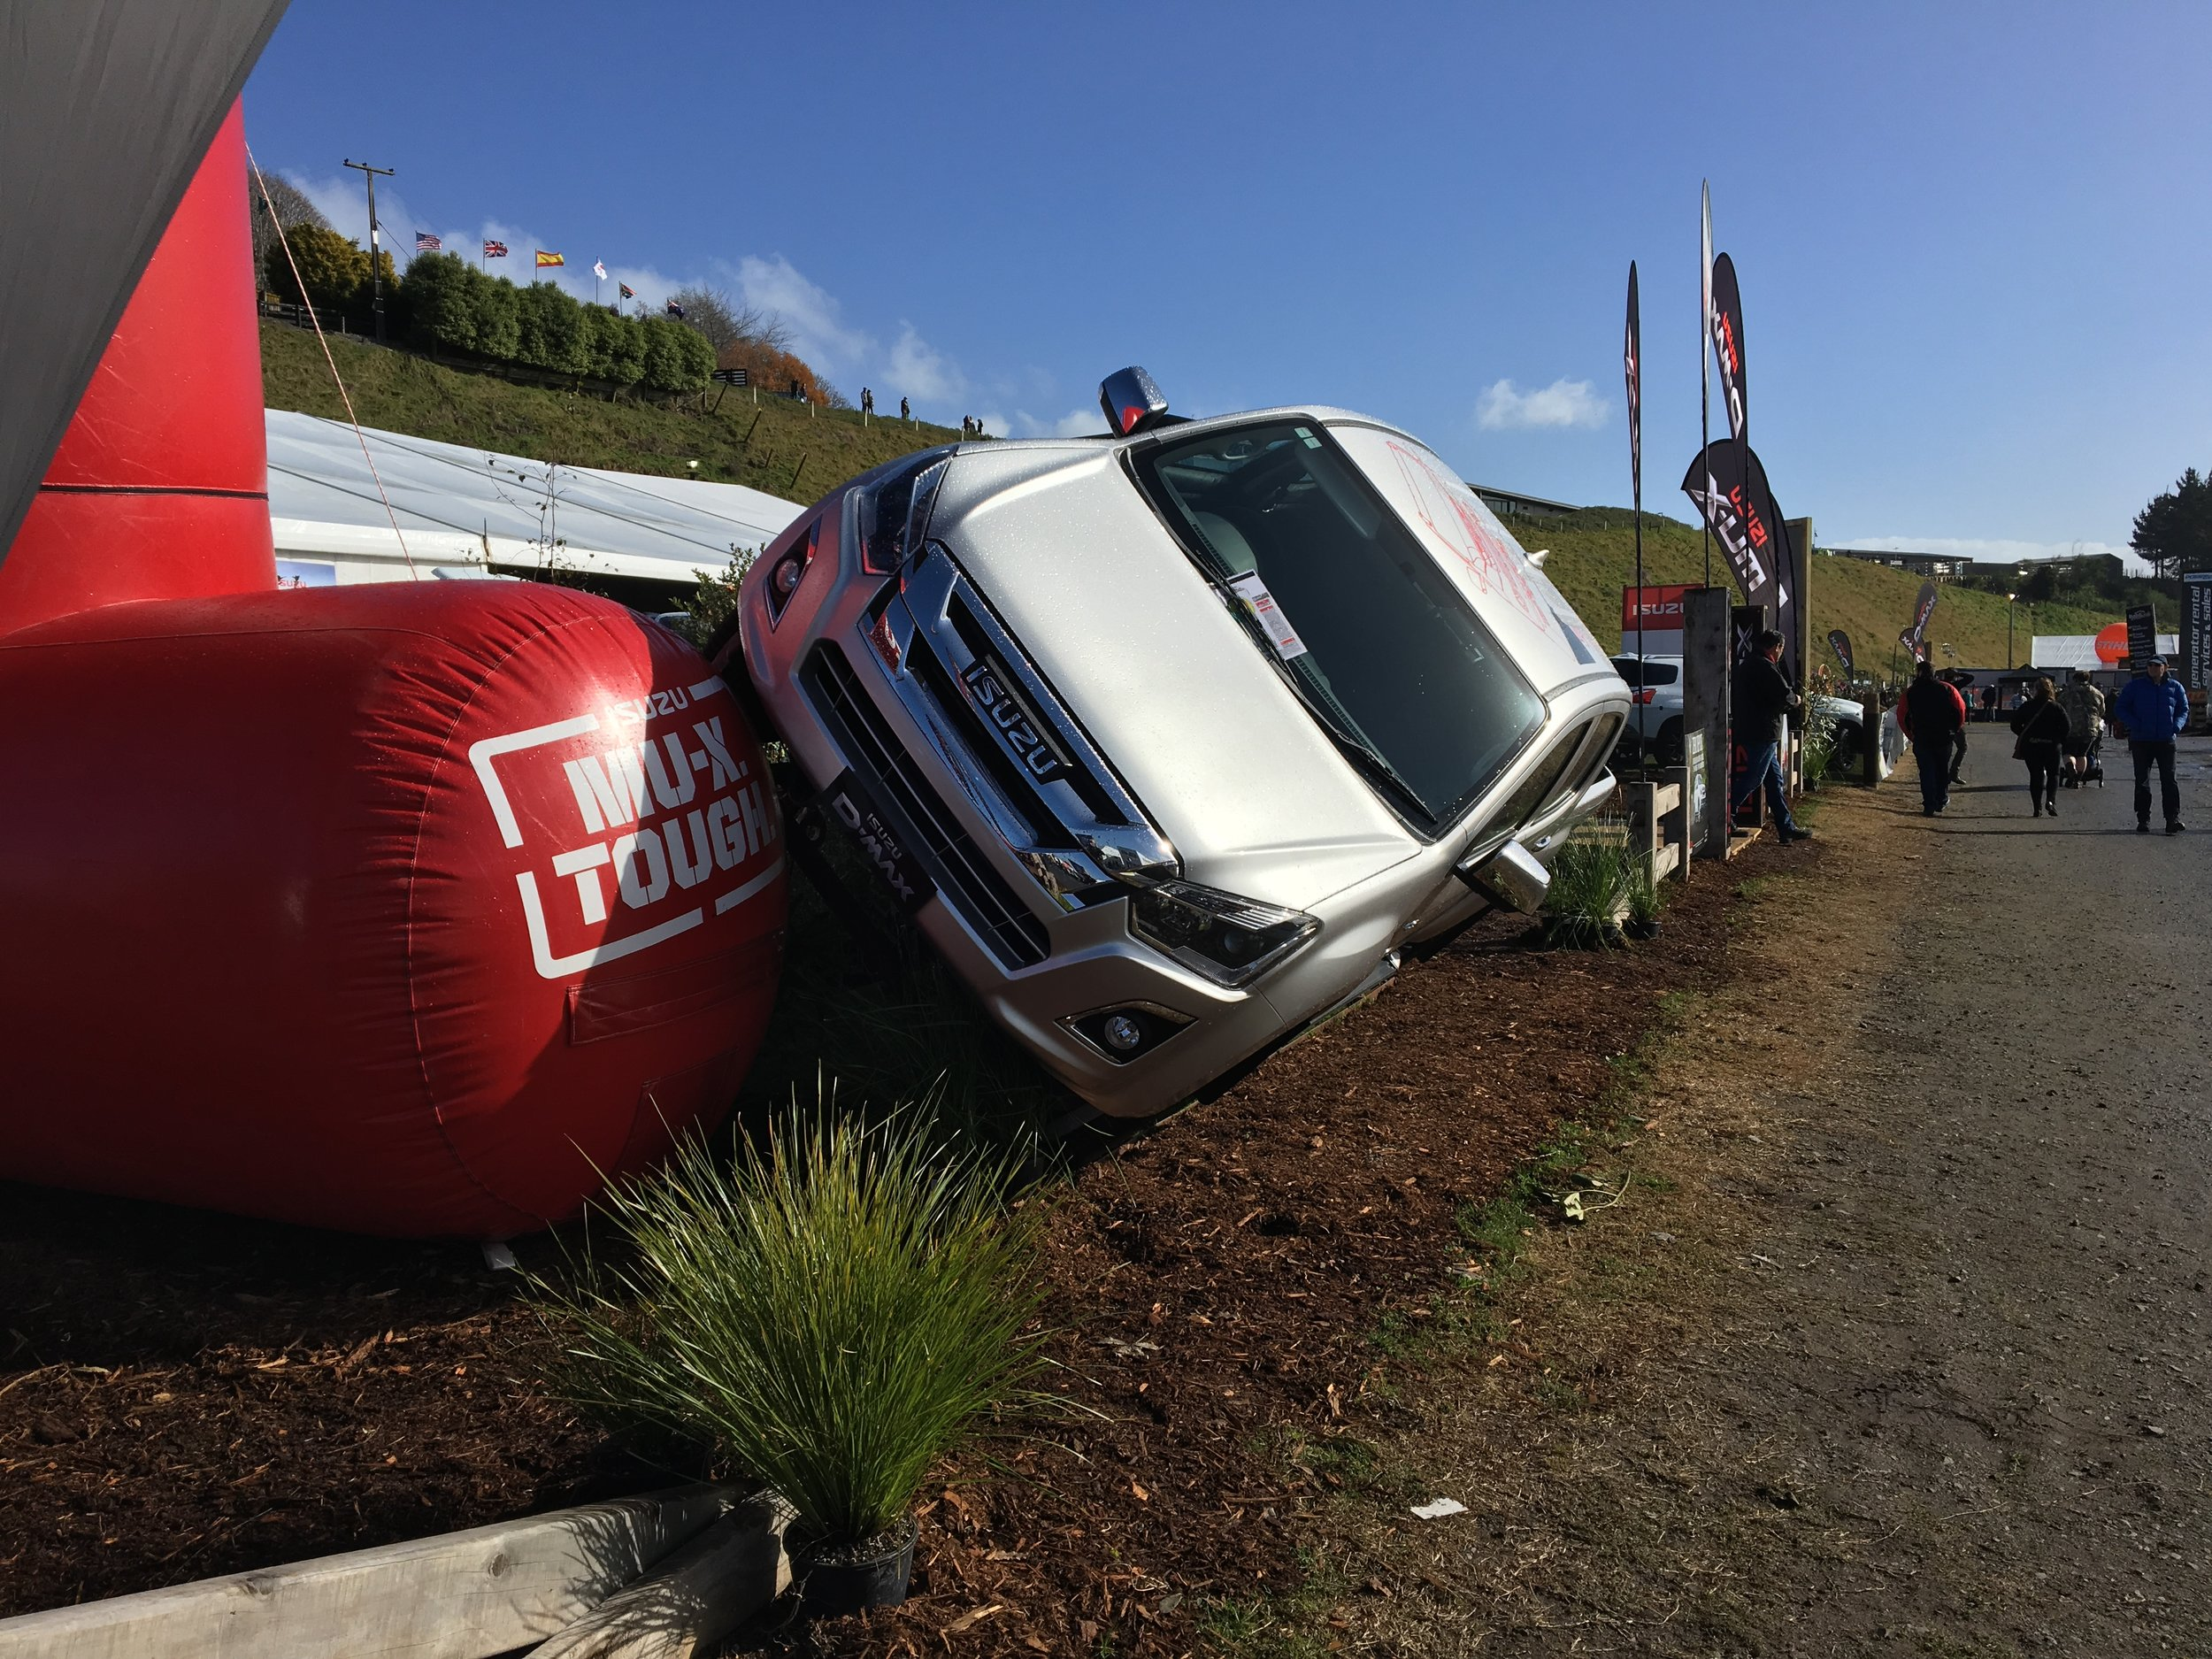 The Isuzu D-Max demonstrating its 49 degree hill-crawling capabilities.